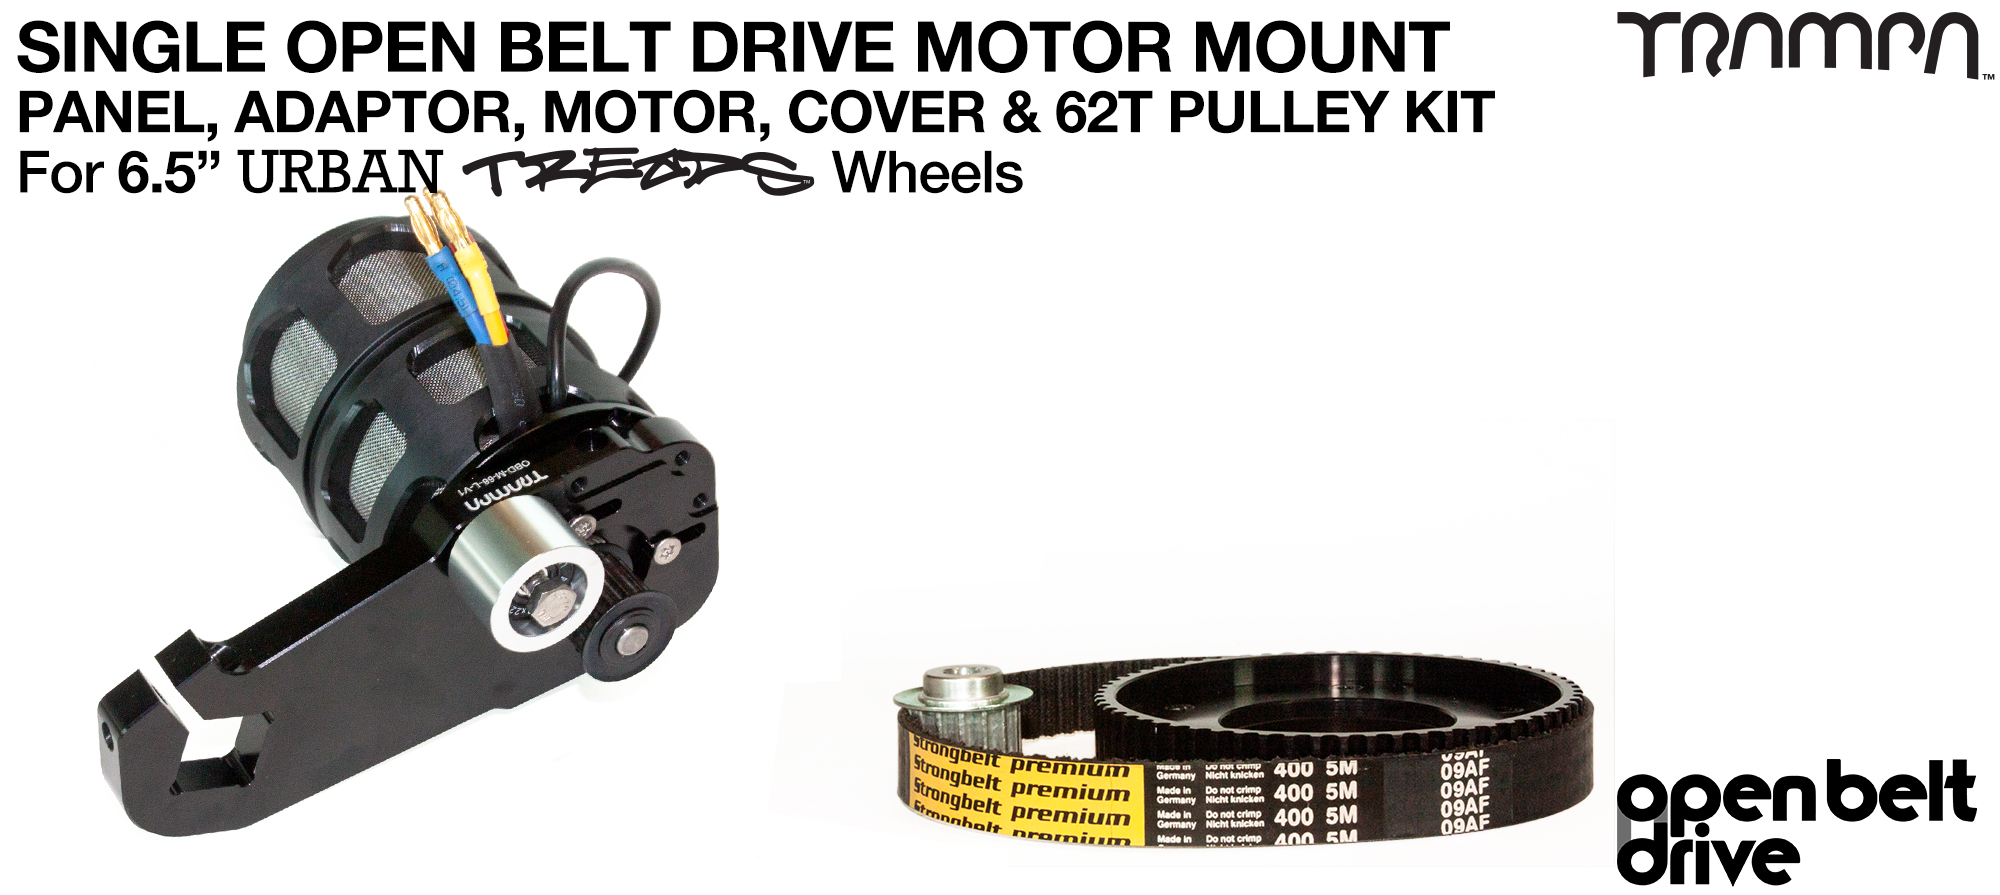 66T OBD Motor Mount with 62T Pulley kit, Motor & Filters  - SINGLE